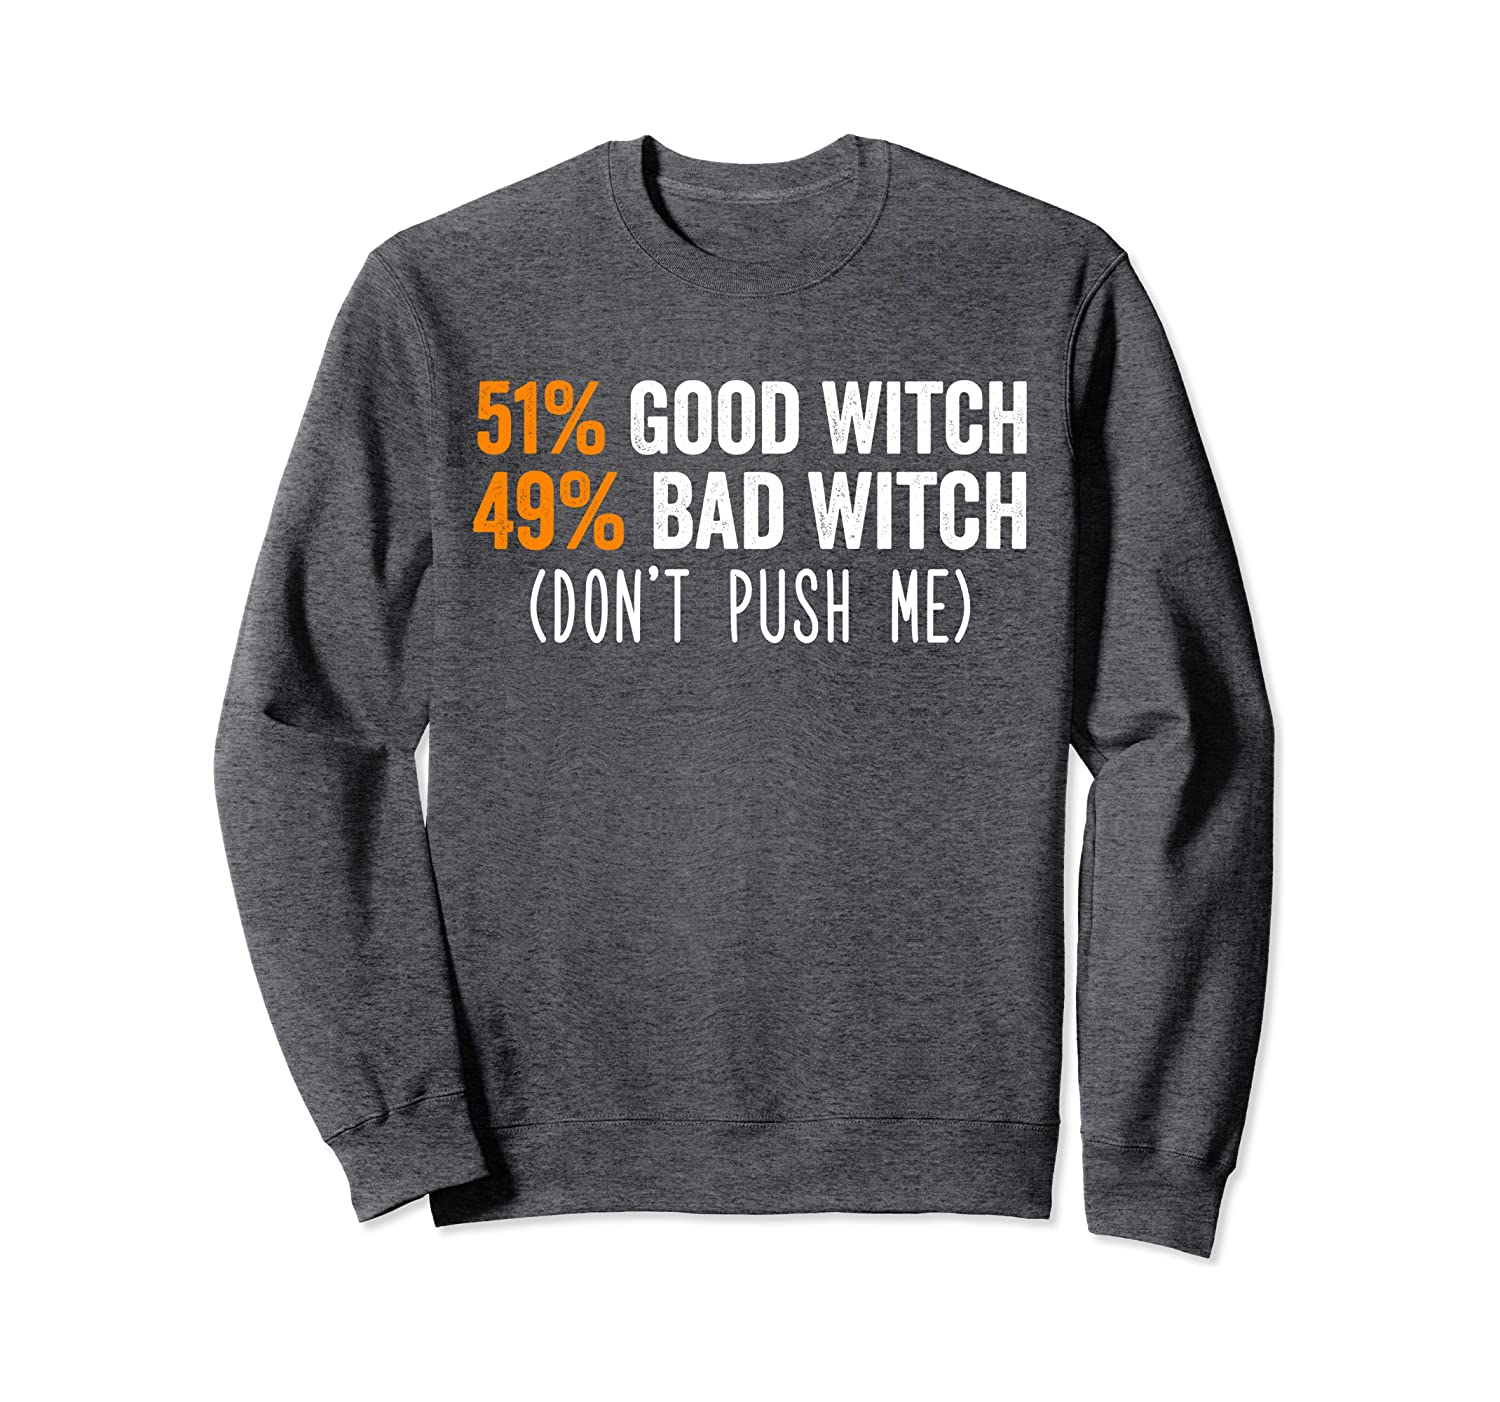 51% Good Witch 49% Bad Witch Don't Push Me Halloween Costume Sweatshirt